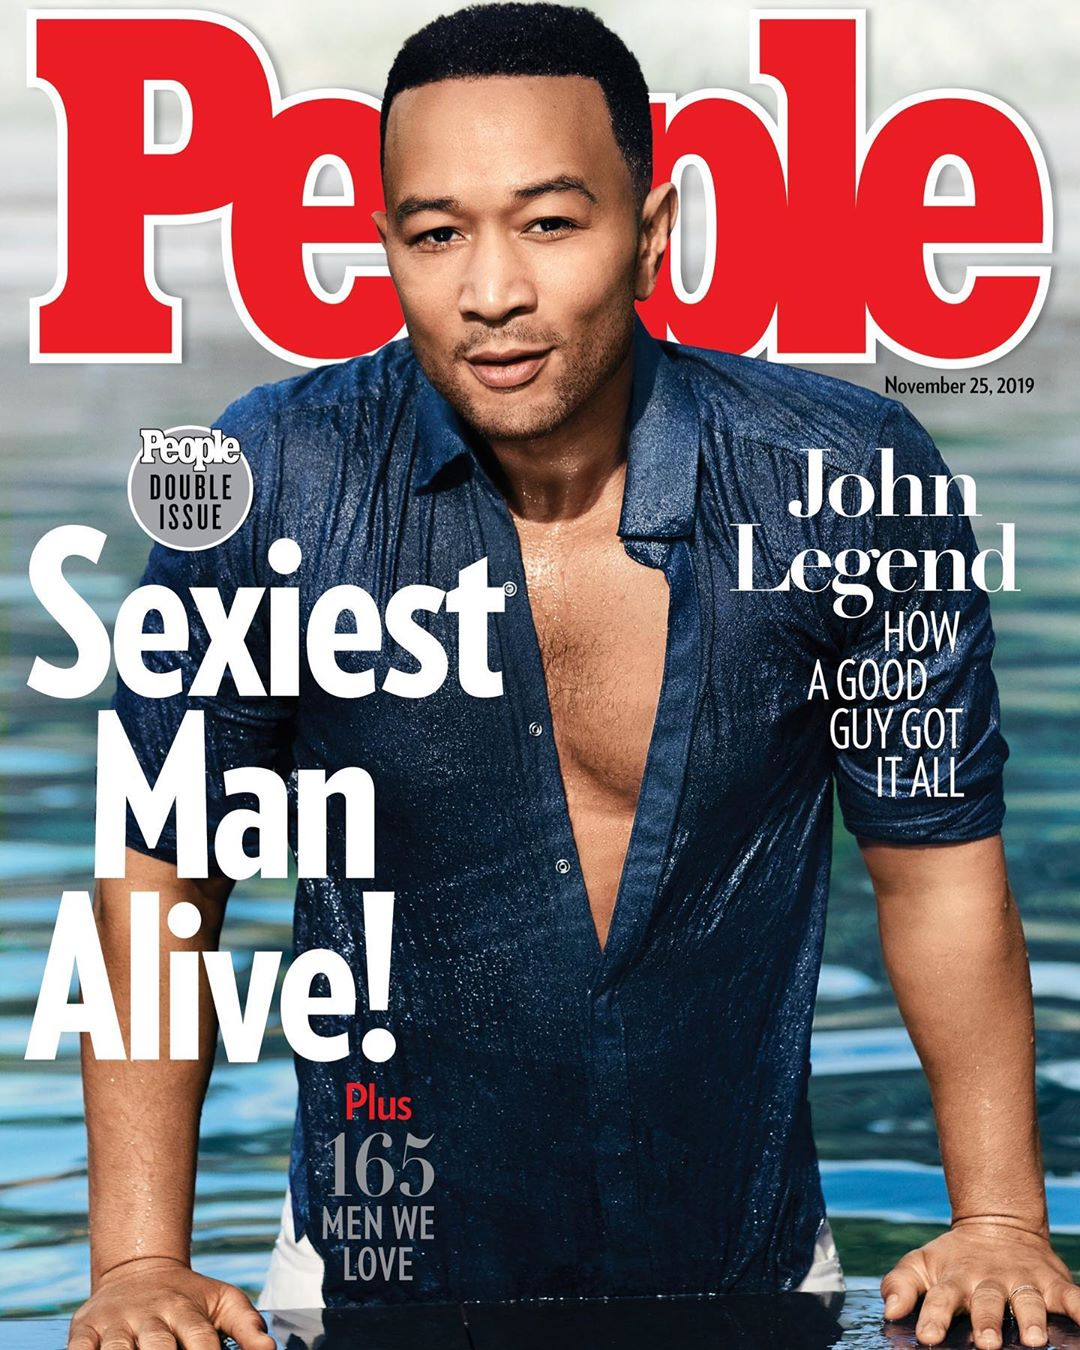 From Ordinary People to Sexy Legend! John Legend is People